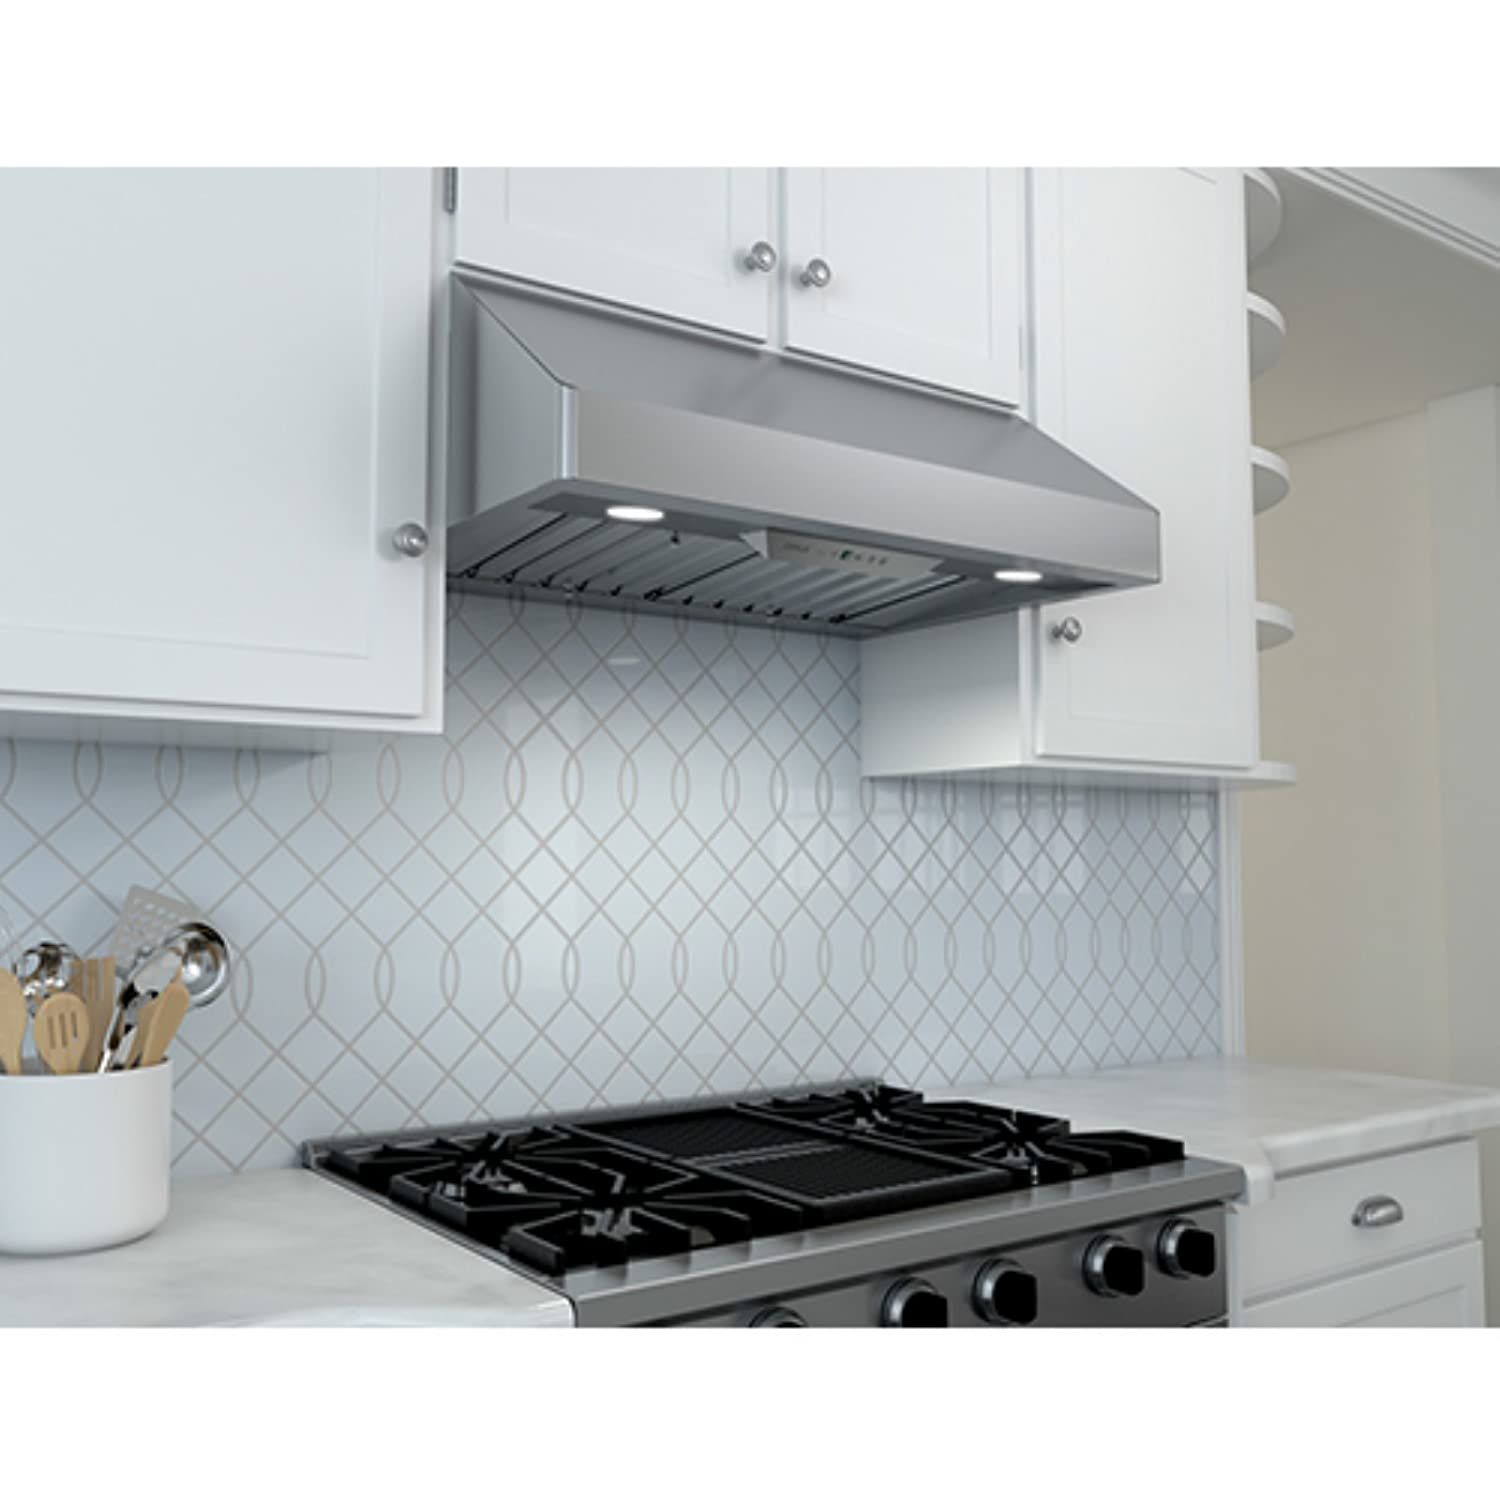 Zephyr under cabinet kitchen hood exhaust fans replacement - Kitchen hood under cabinet ...